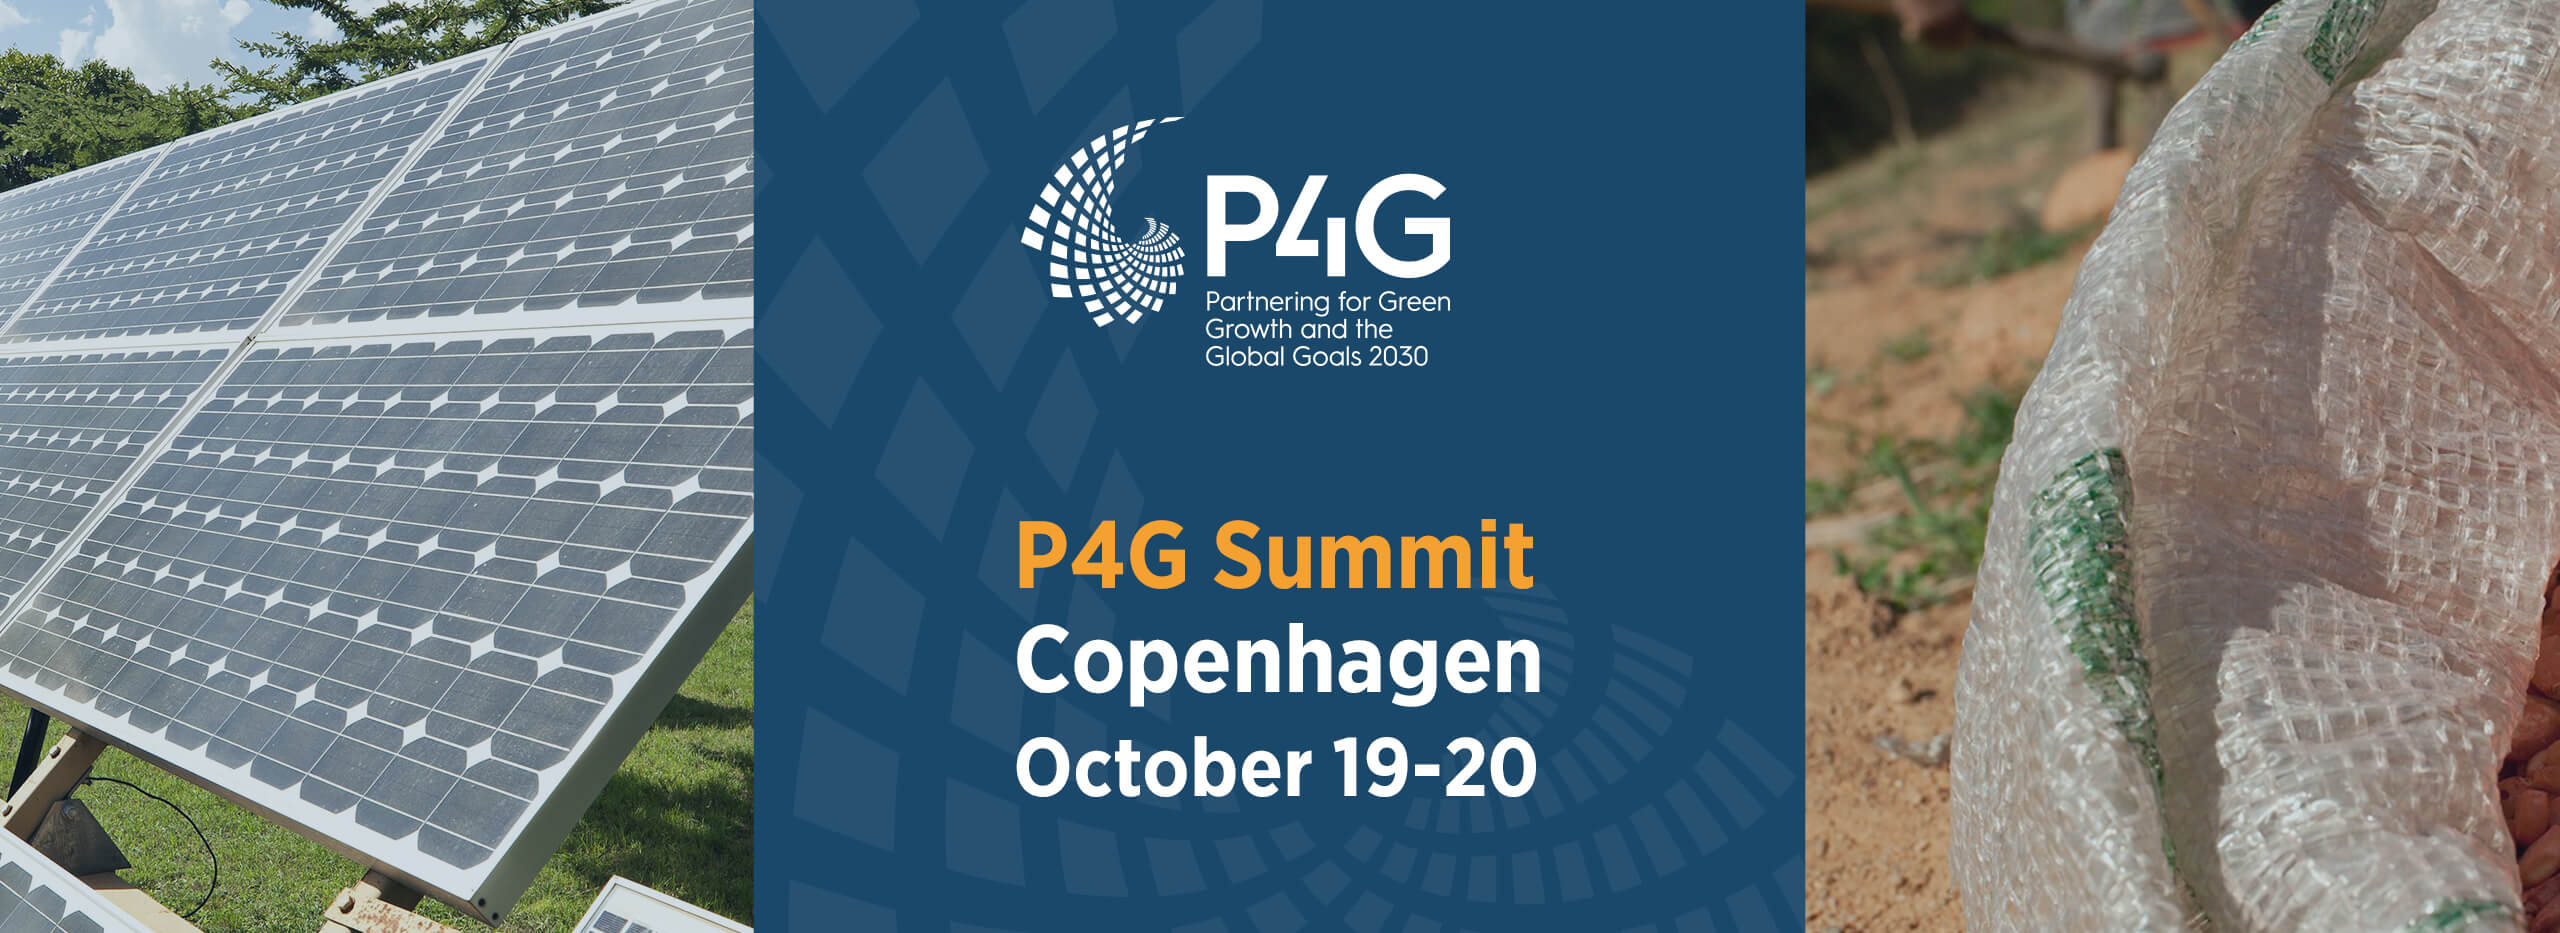 Header of P4G Summit blog